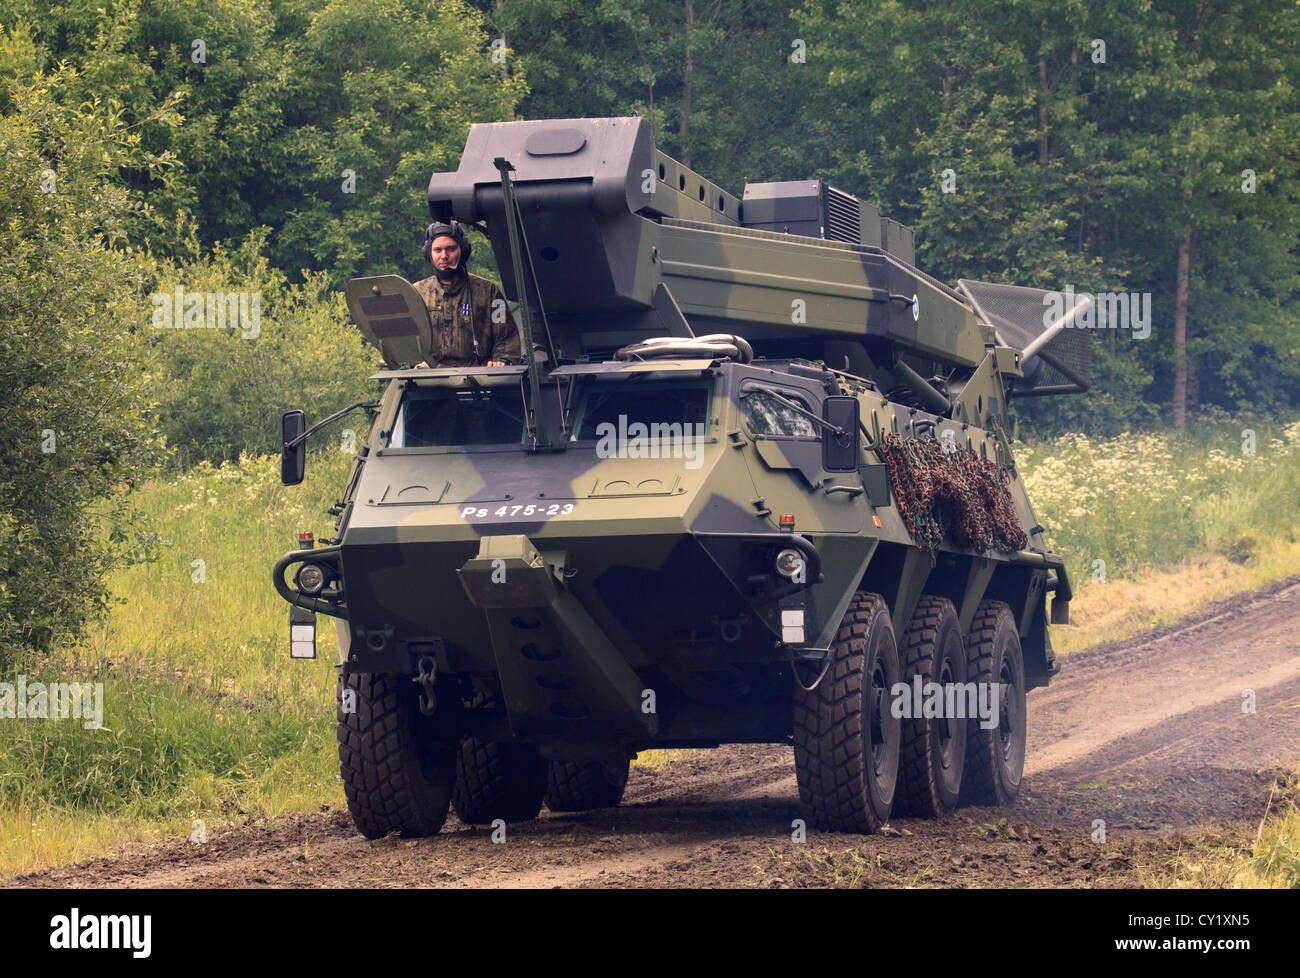 Air defence radar mounted on a Sisu XA-182 APC of the Finnish Army. - Stock Image